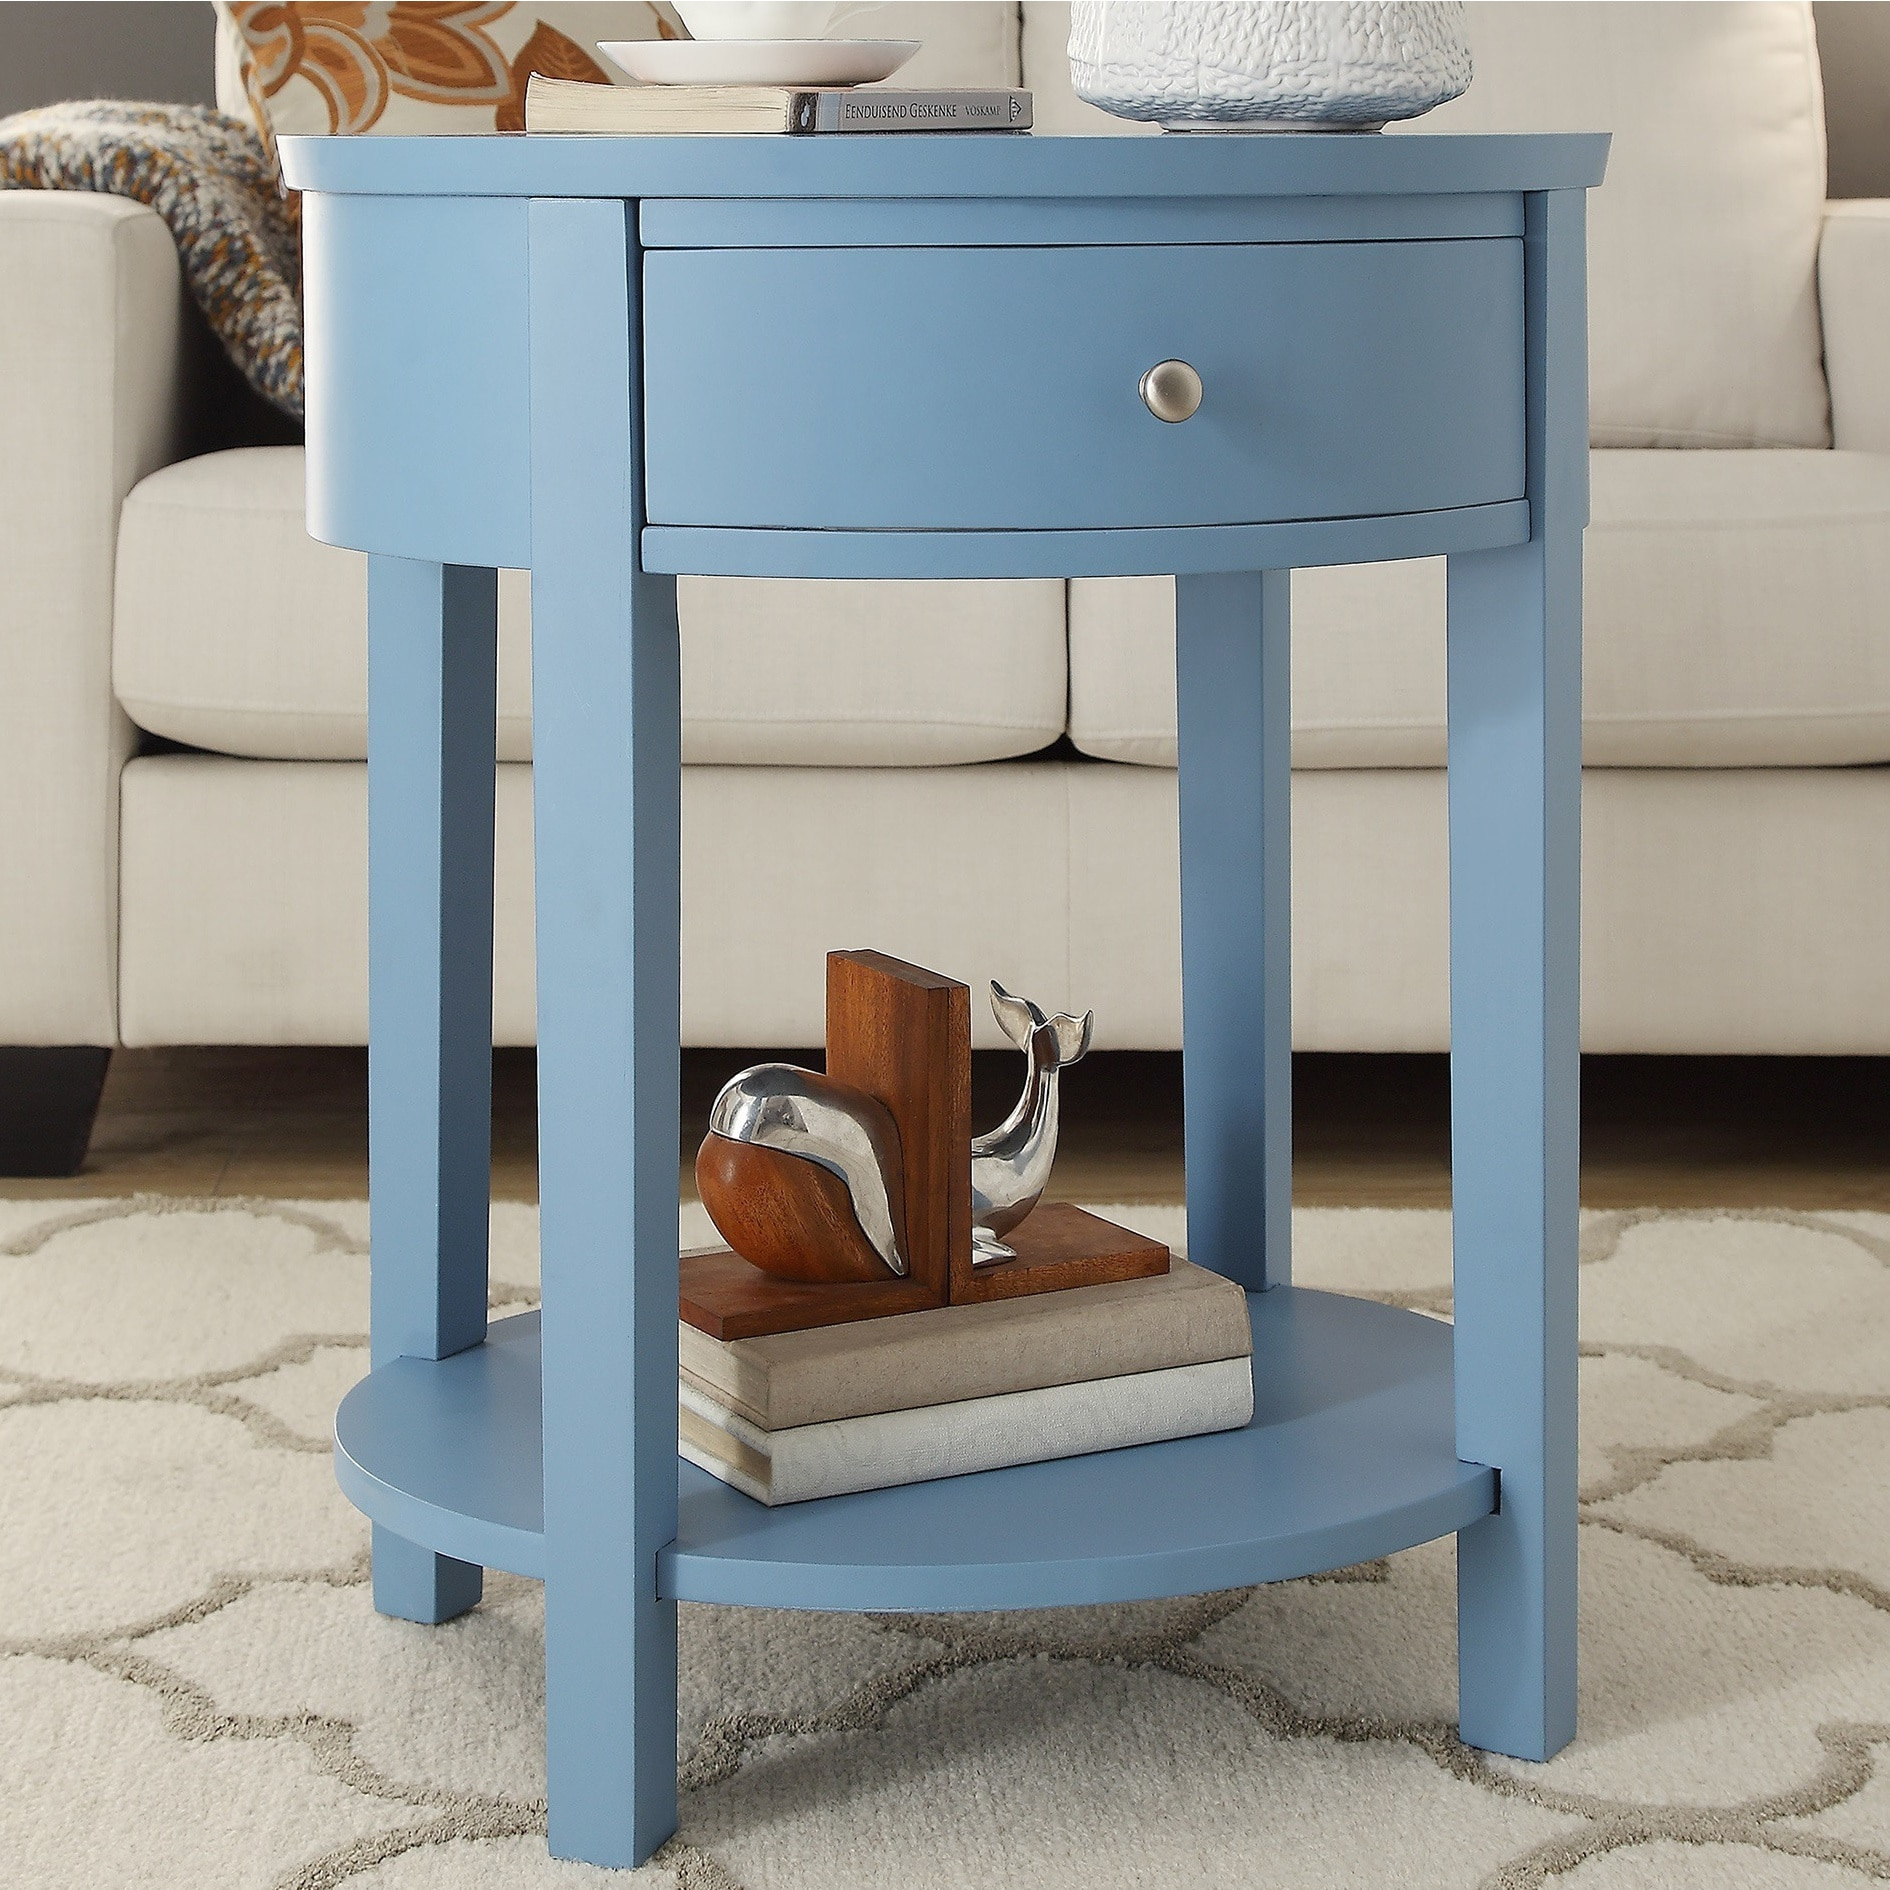 nightstand safe the terrific awesome oxford one drawer end table tables small coffee living room furniture dorm desk home fillmore oval wood shelf accent inspire elegant blue